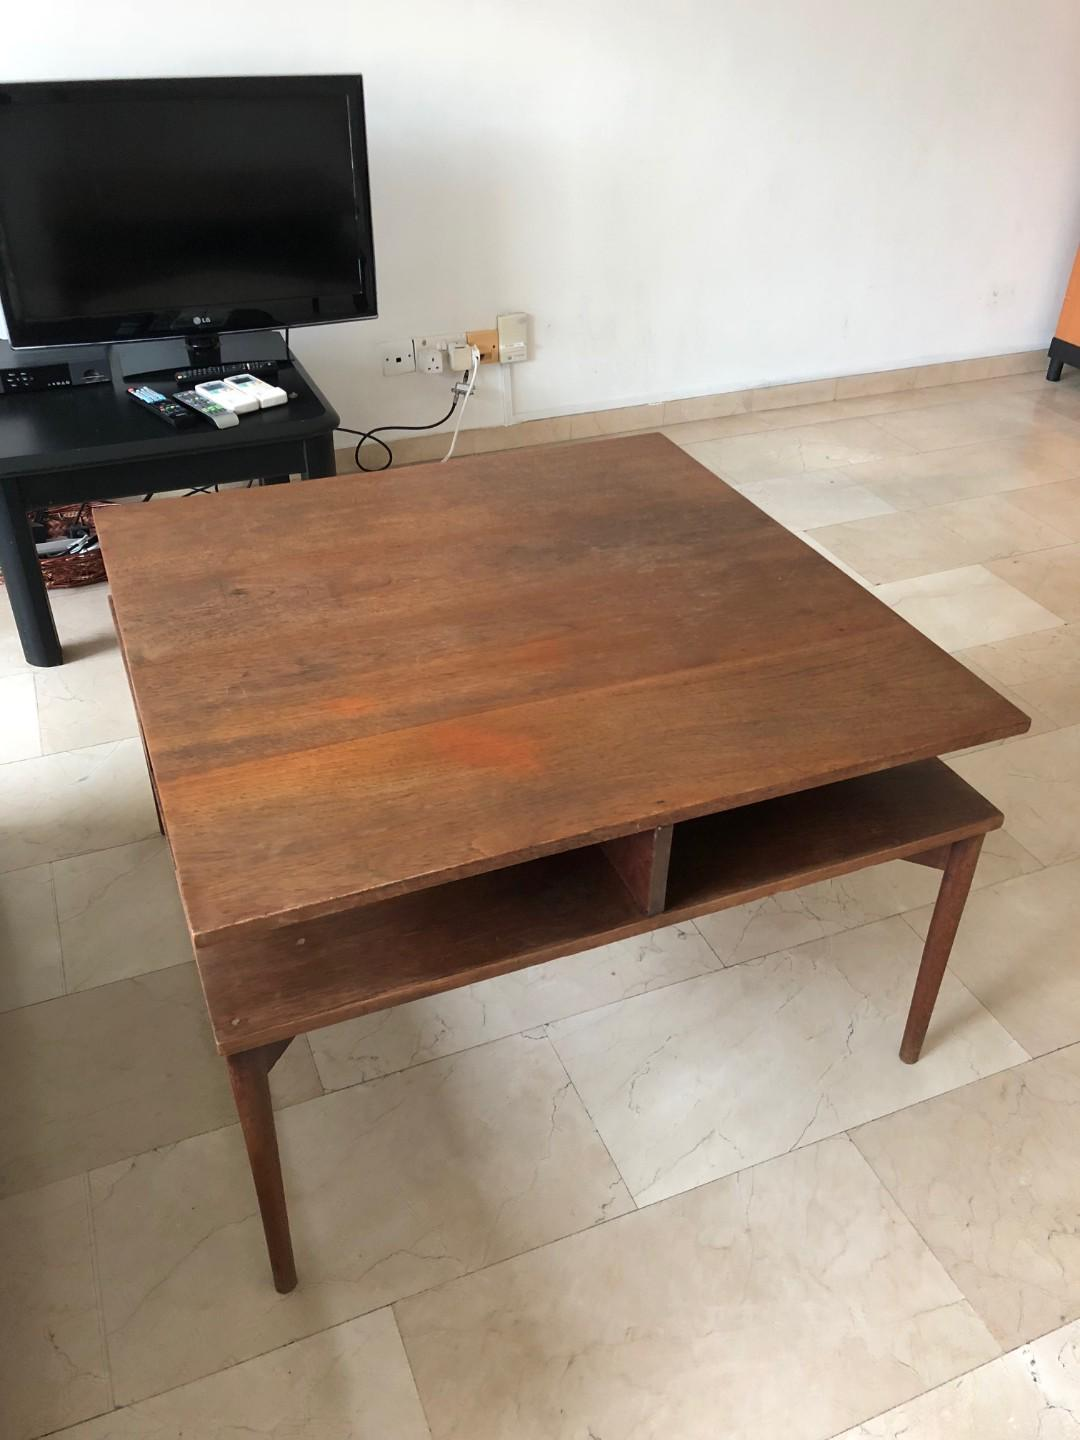 Wooden Coffee Table With Under Table Storage Furniture Tables Chairs On Carousell